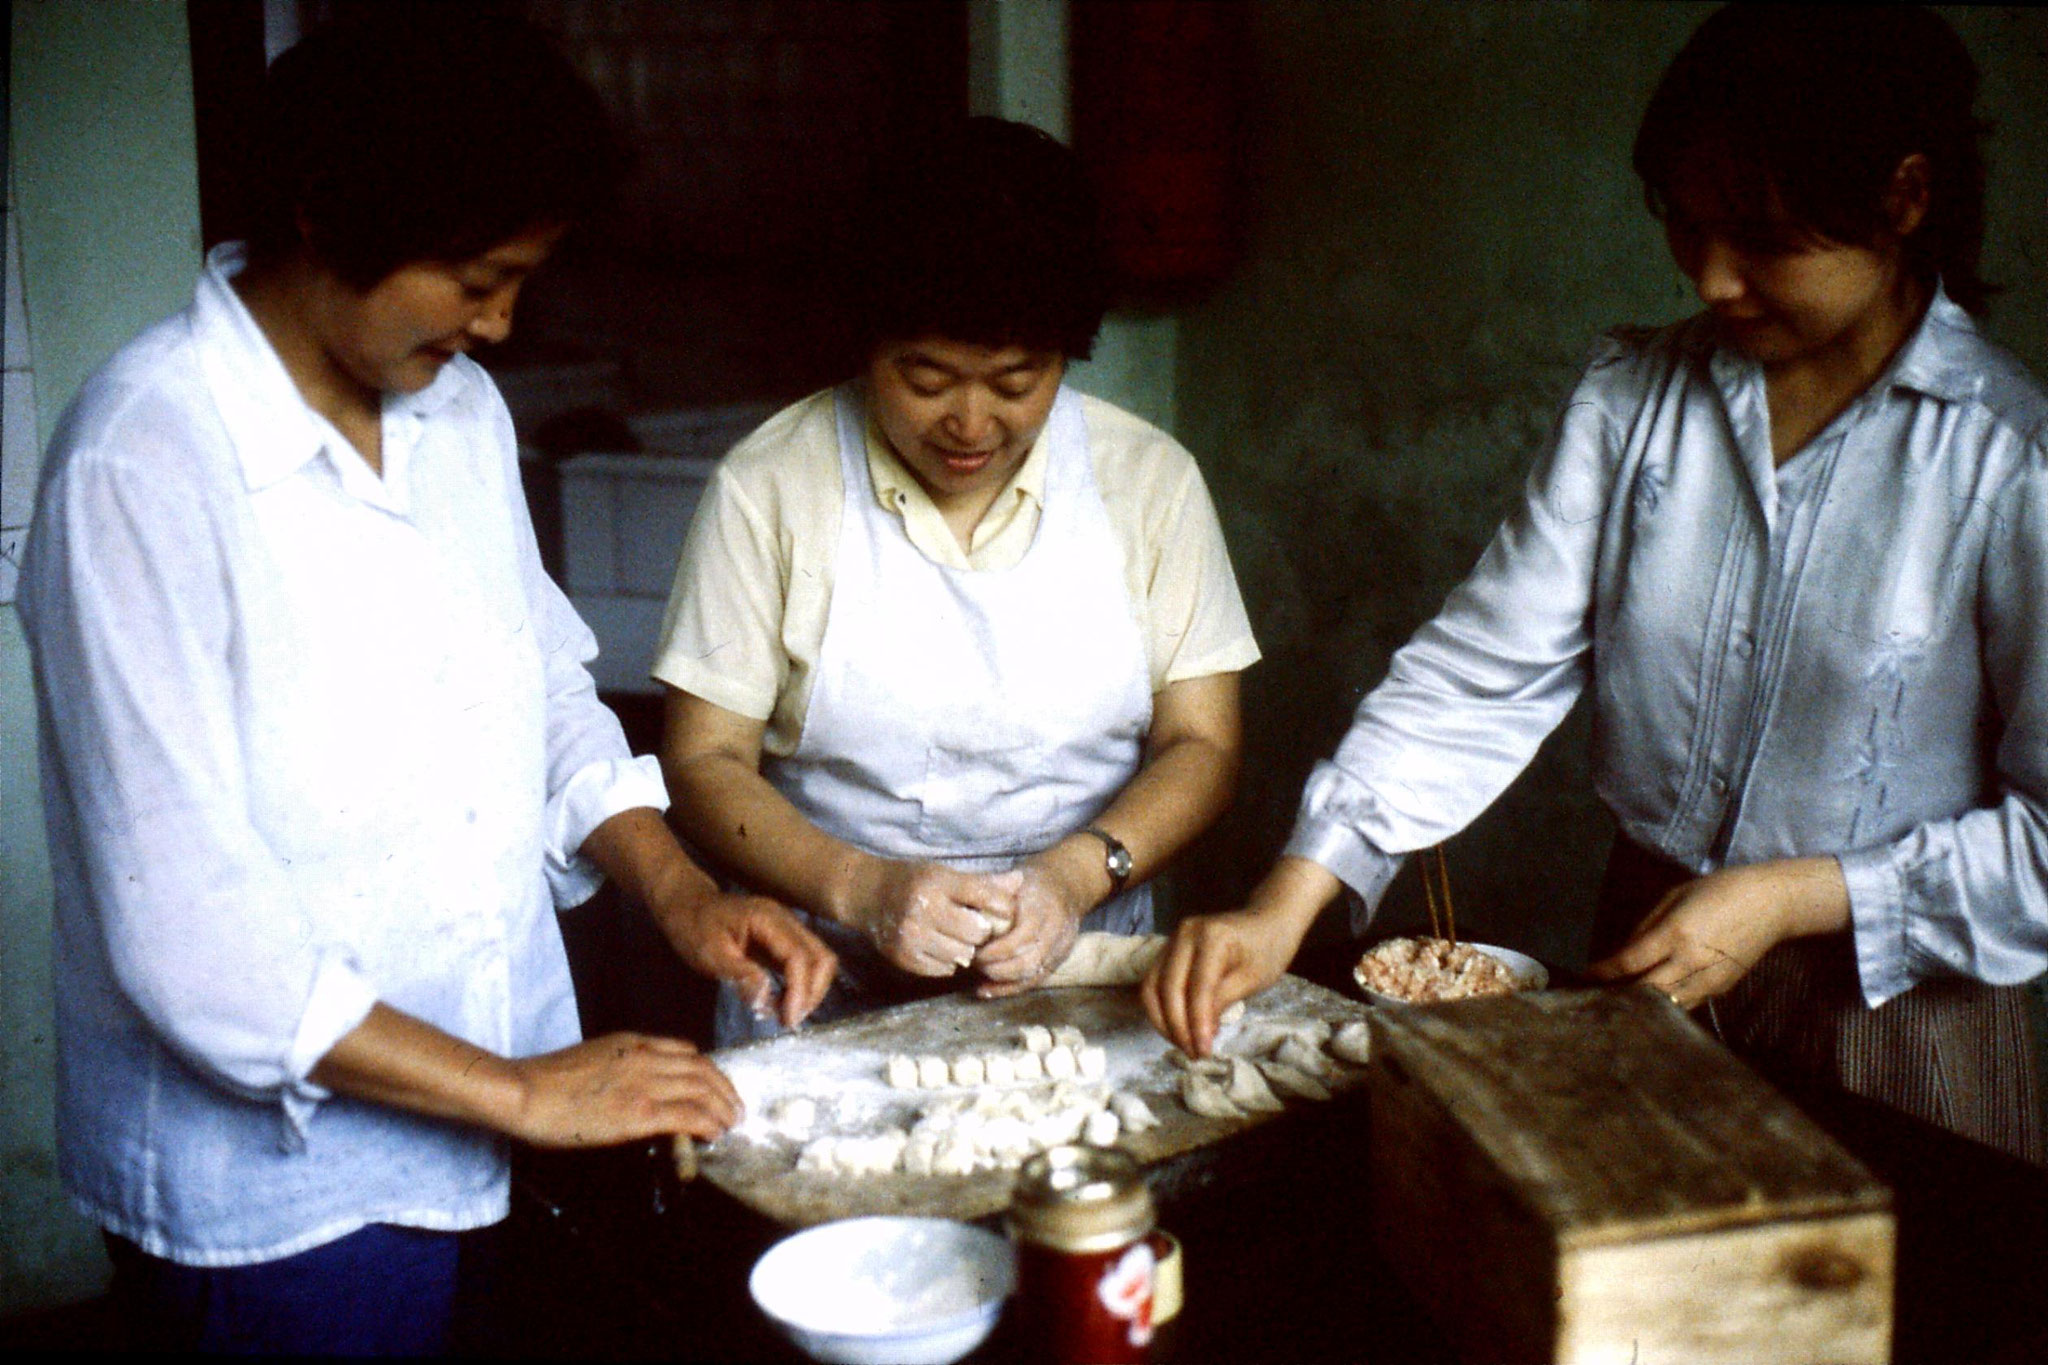 8/7/1989: 25: women making jiaozi